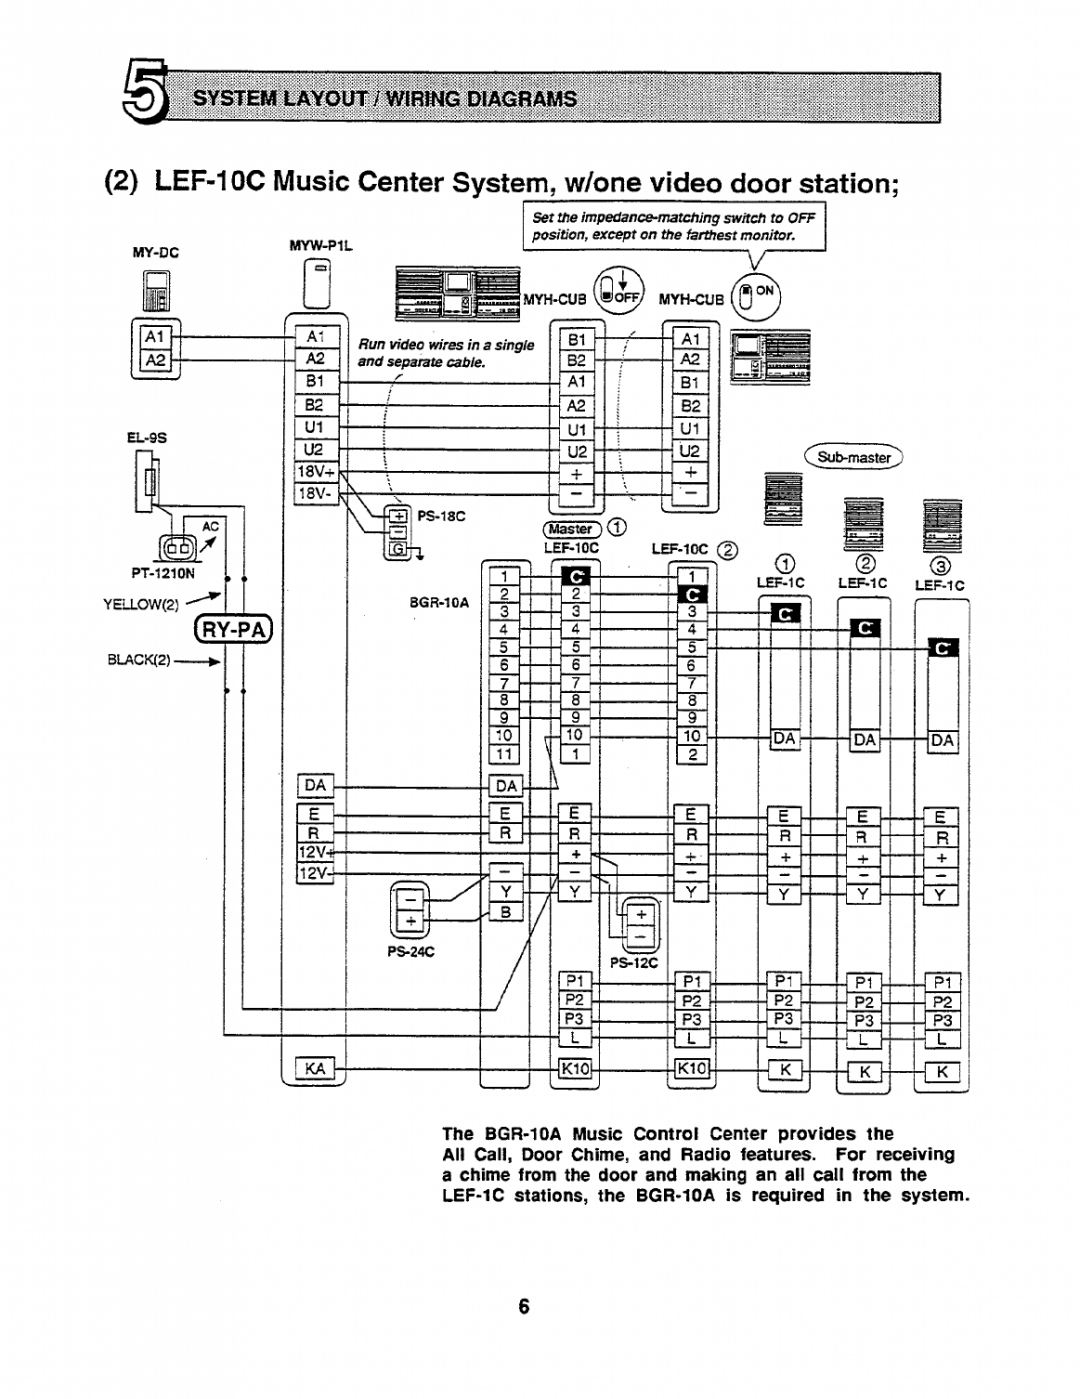 aiphone lef 3l wiring diagram Collection-AiPhone Lef 10 Wiring Diagram Best Diagram Lee Dan Audio and Video Apartment Inter S 4-c